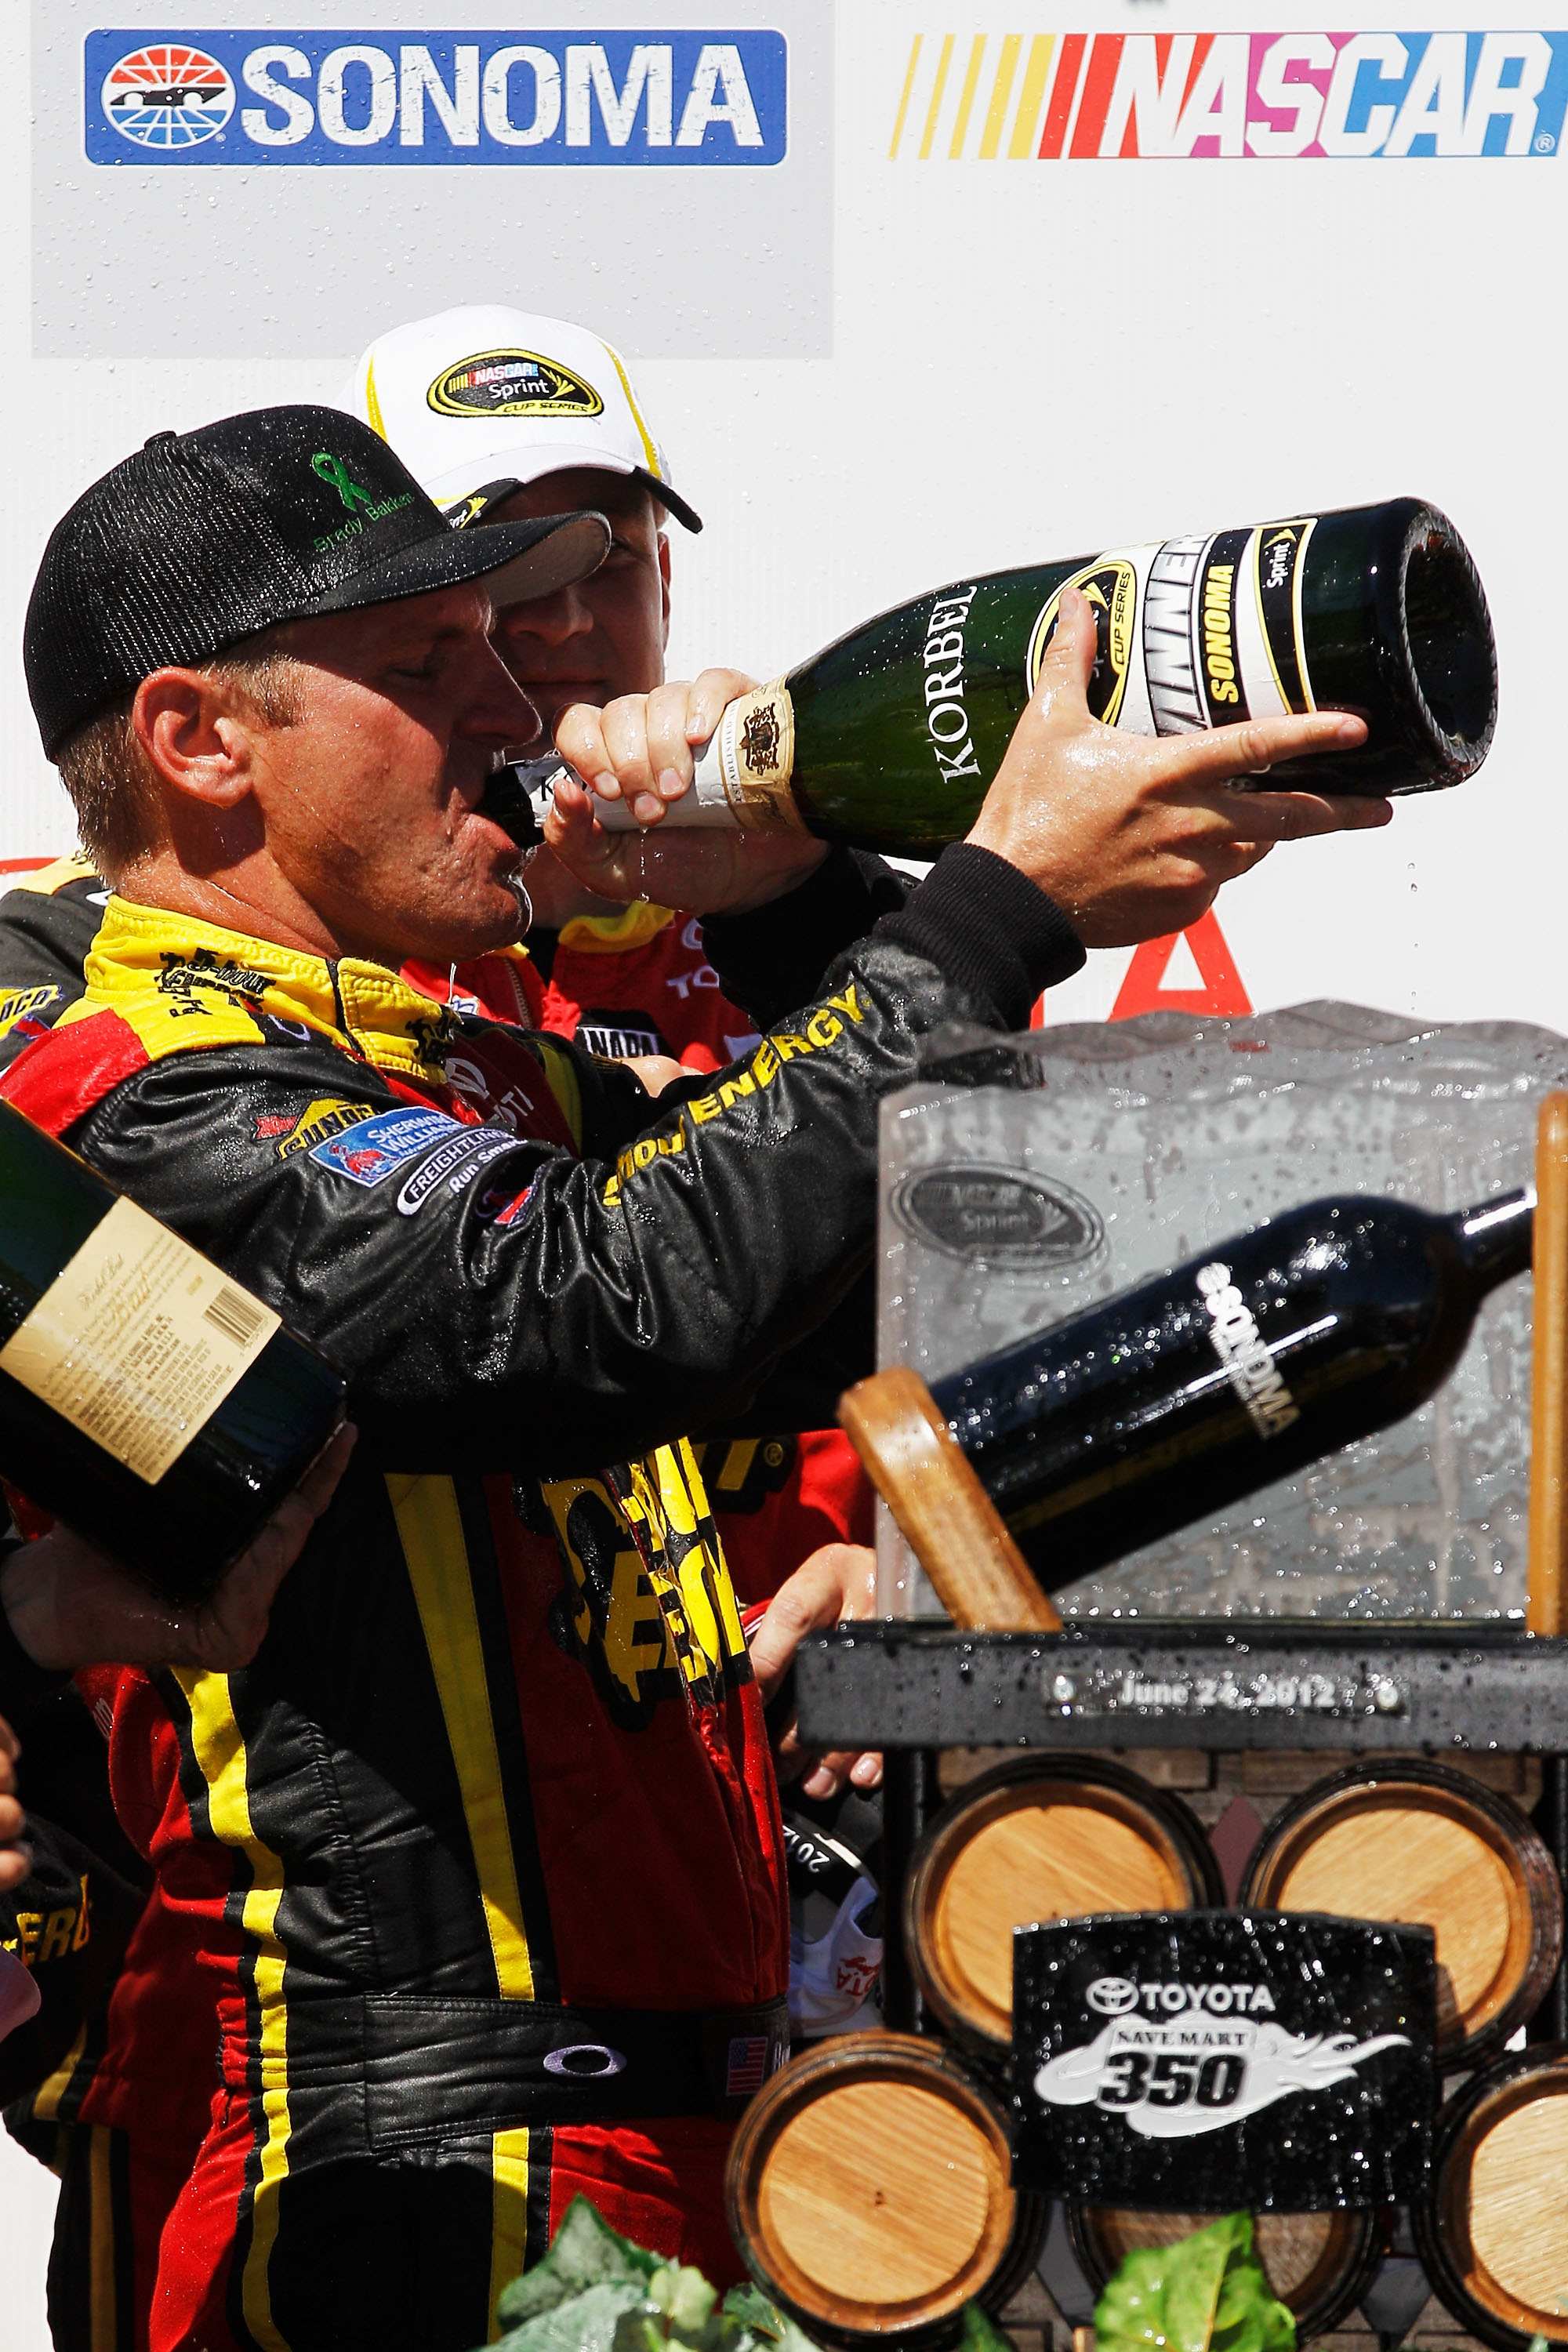 Clint Bowyer celebrates after winning at Sonoma. (Getty Images)